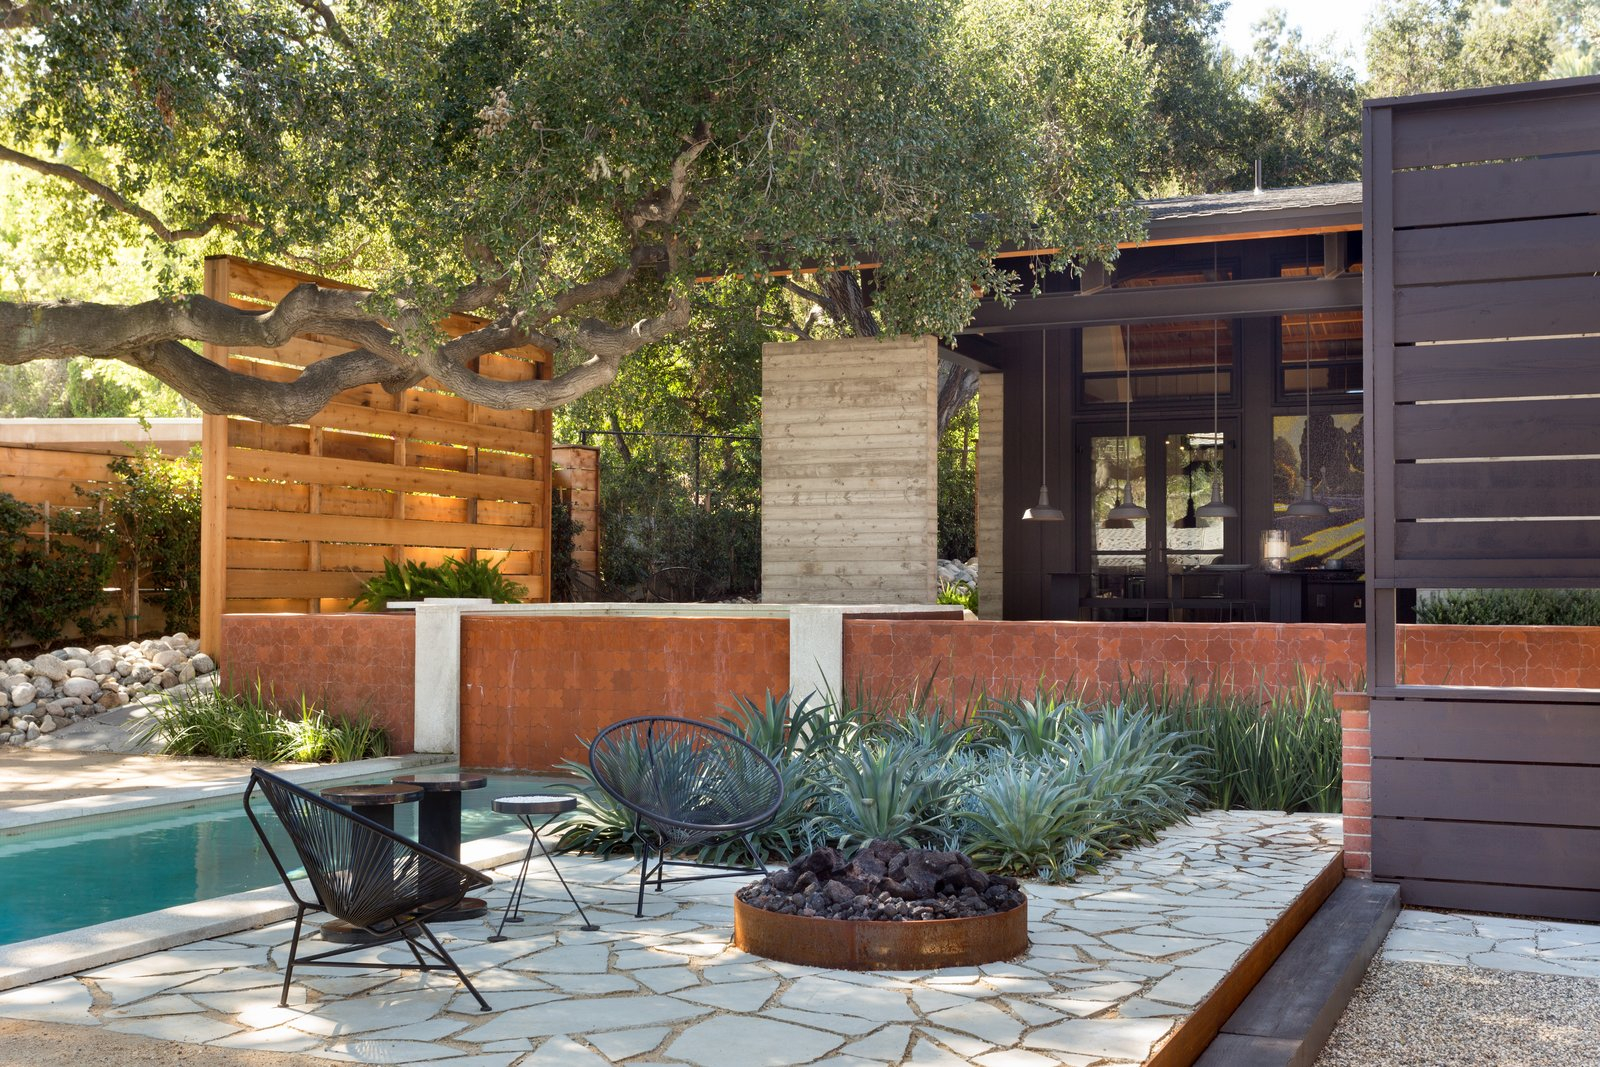 6 Backyard Landscape Designs That Need Minimal Maintenance Dwell in 14 Clever Initiatives of How to Make Backyard Landscaping Designs